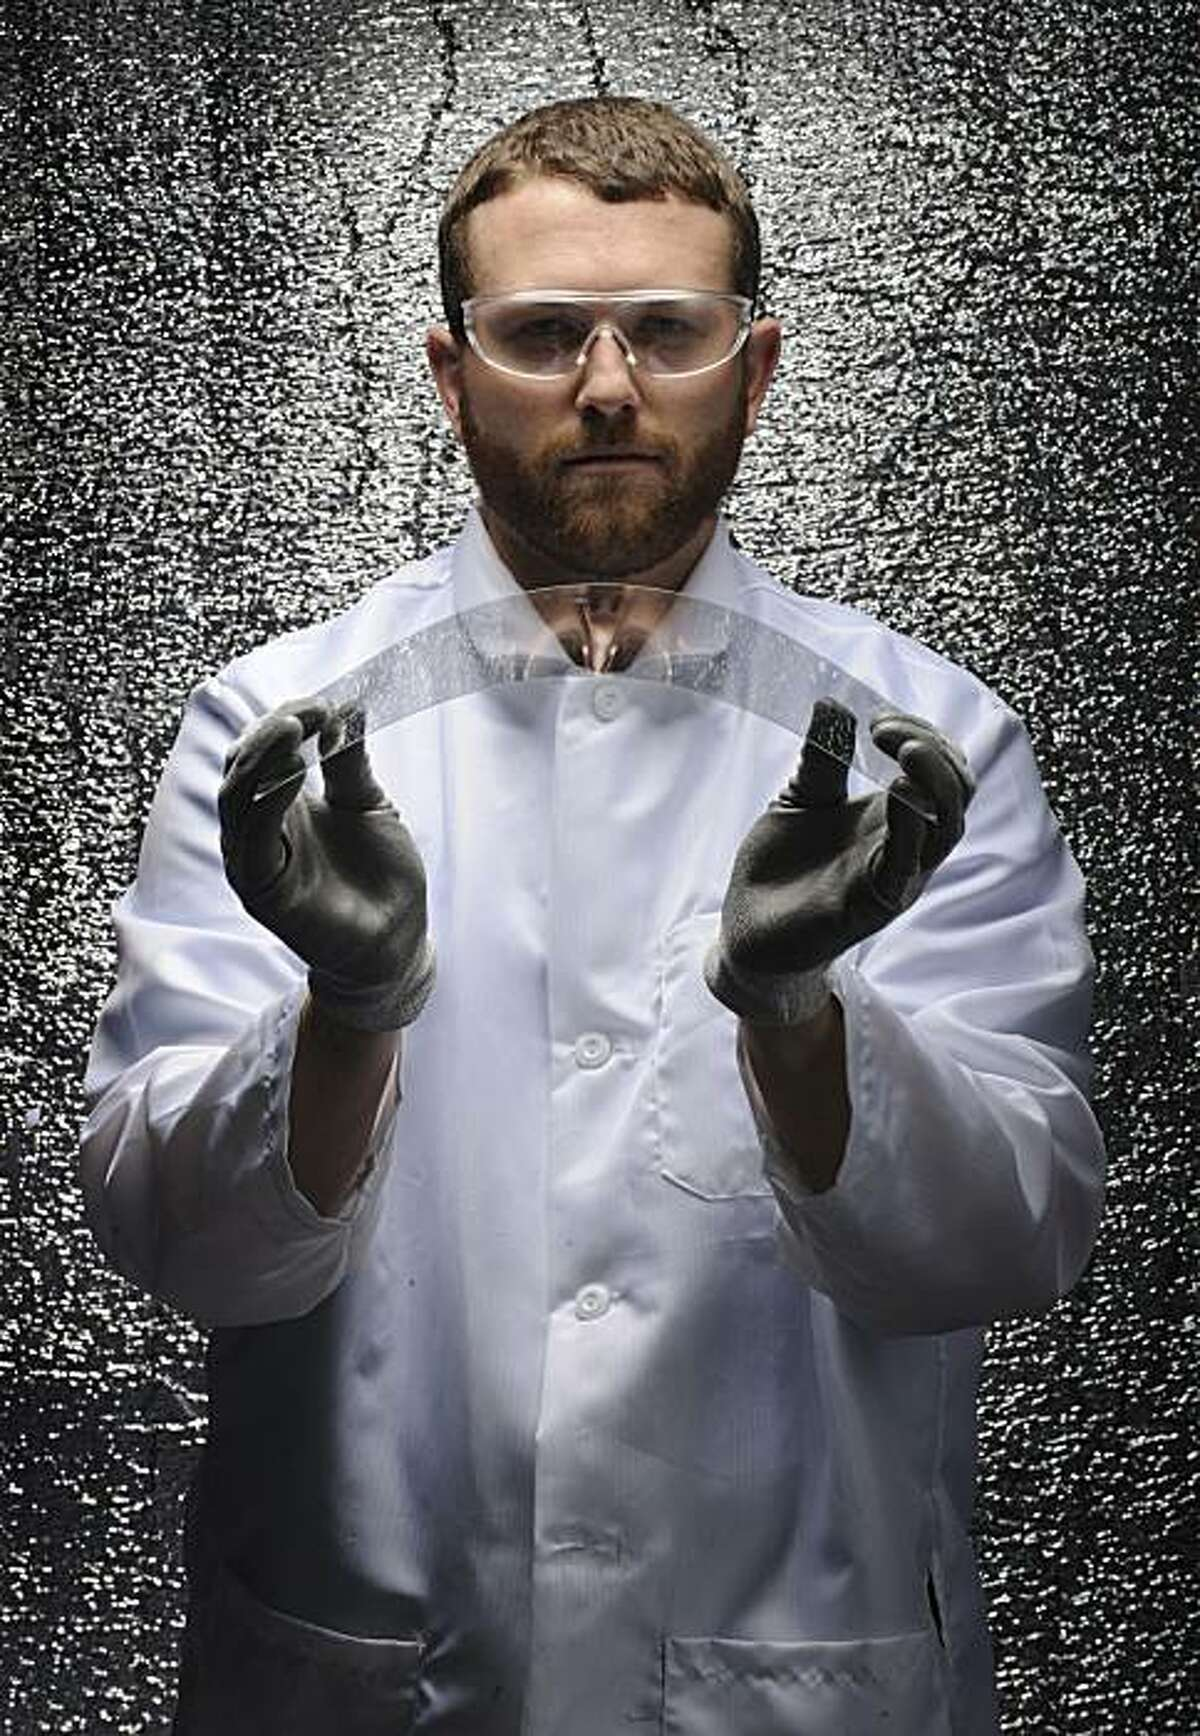 FILE - In this undated file photo released by Corning Inc., Corning scientist Matt Black poses for a photo demonstrating the strength and flexibility of Corning's thin and damage resistant Gorilla glass in Corning, N.Y. Corning Inc. said Friday, Feb. 4, 2011, it expects its annual sales to grow more than 50 percent to $10 billion by 2014, driven by surging demand for ultra-thin glass used in television monitors, smart phones and touch-screen tablets.